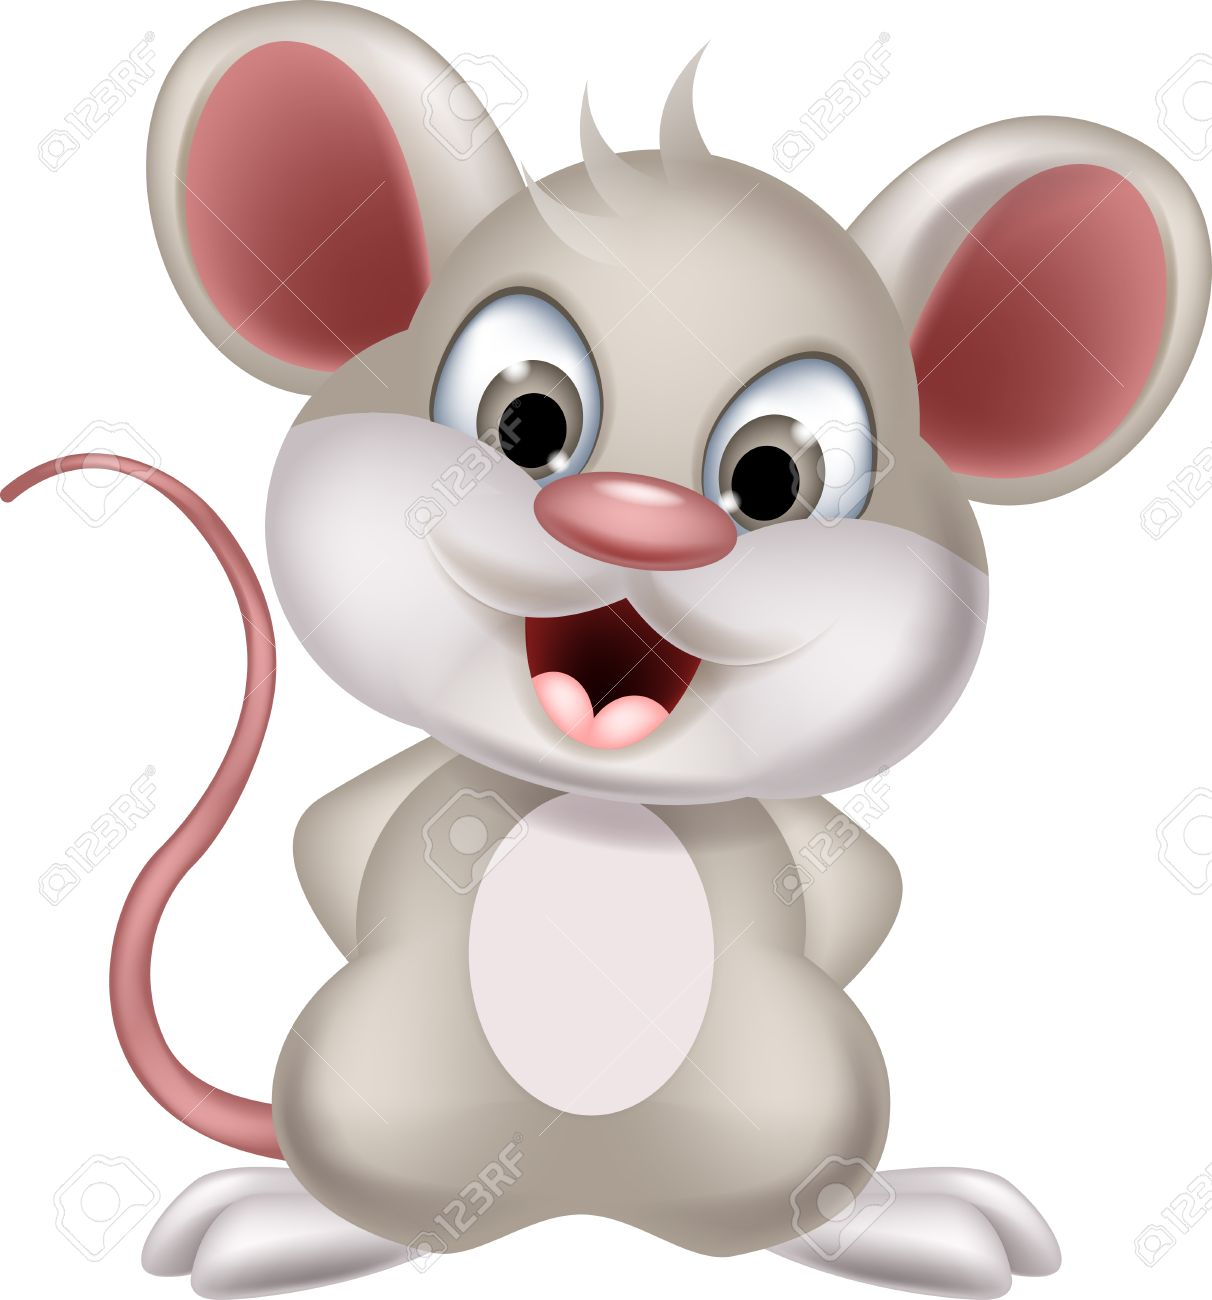 Cute Mouse Cartoon Posing Royalty Free Cliparts, Vectors, And ...